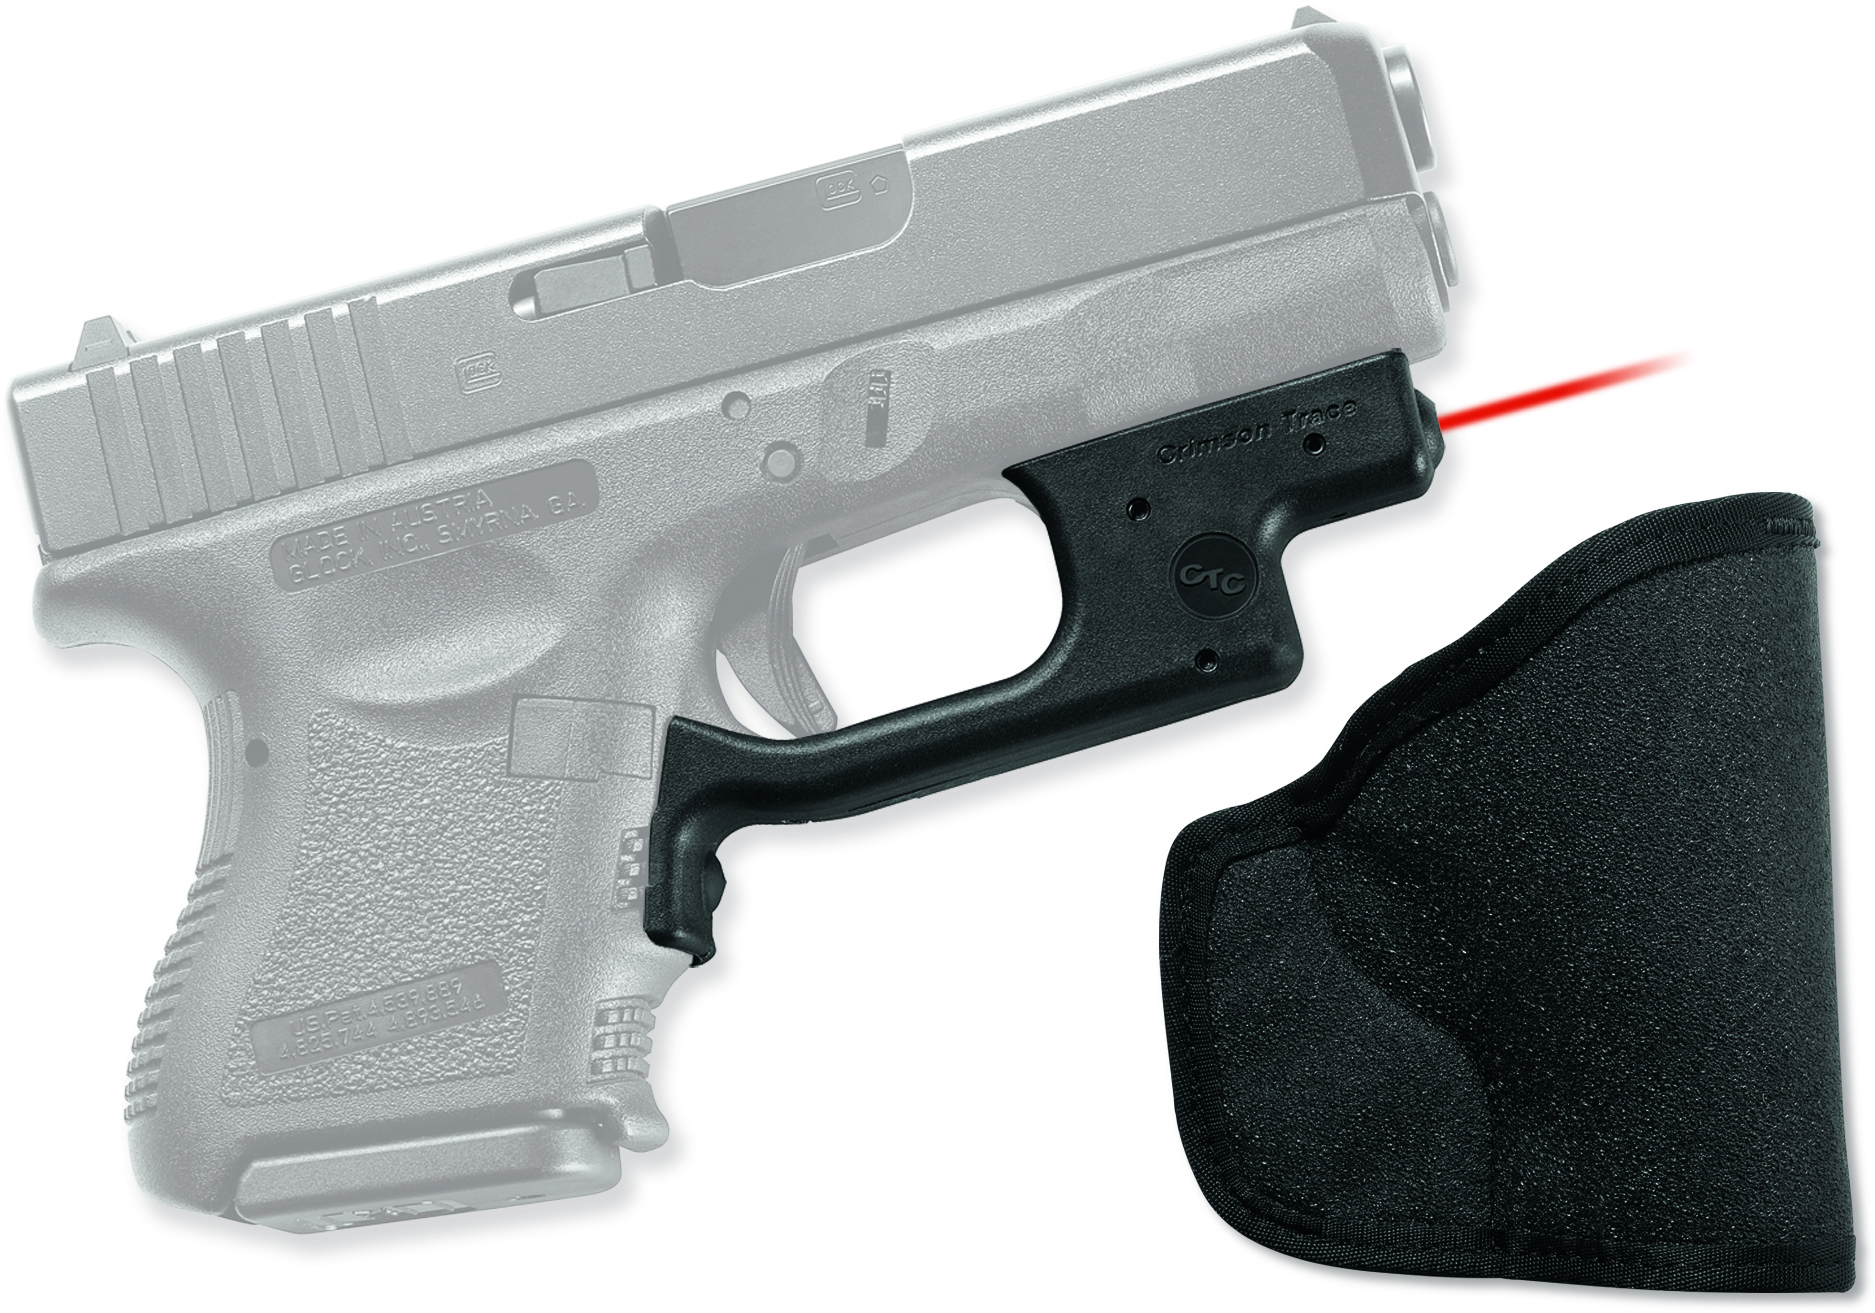 Crimson Trace Laserguard for Glock 19/23/25/26/27/28/32/33/36/38/39 LG436